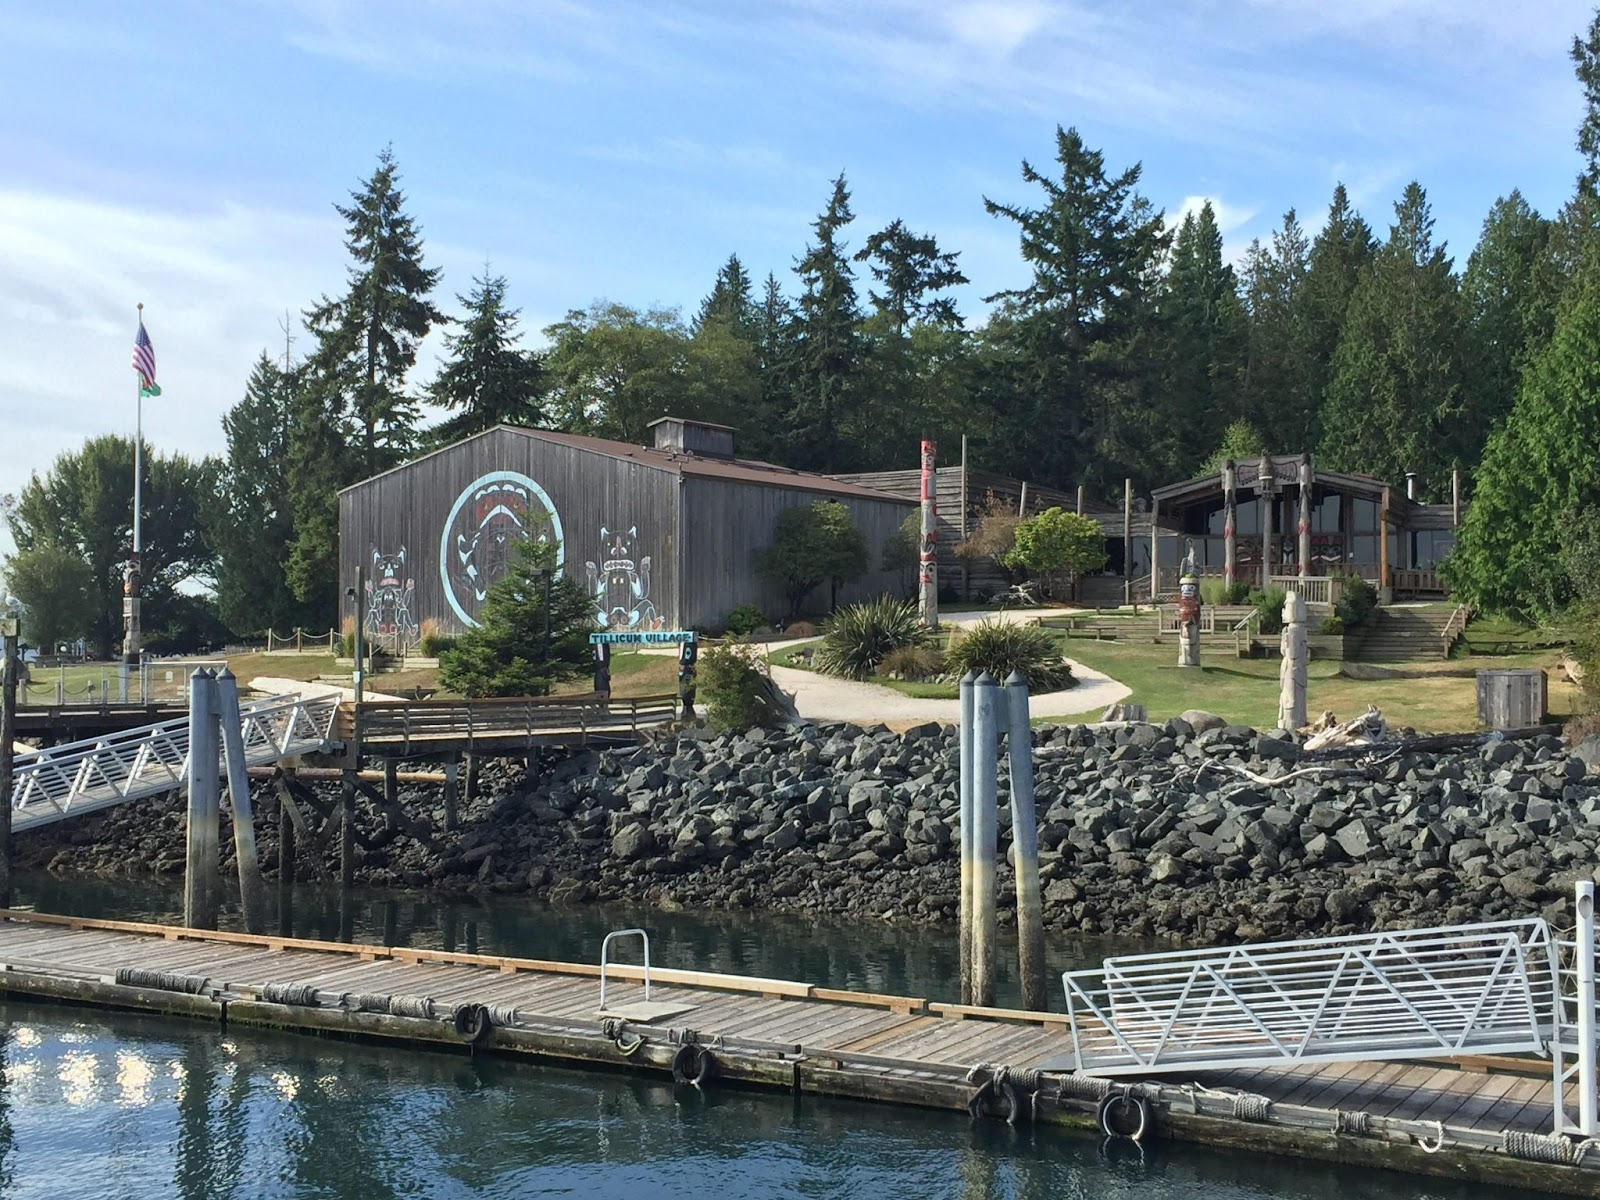 Planning Outdoor Events in Seattle? Everything You Need To Know Is In This Guide